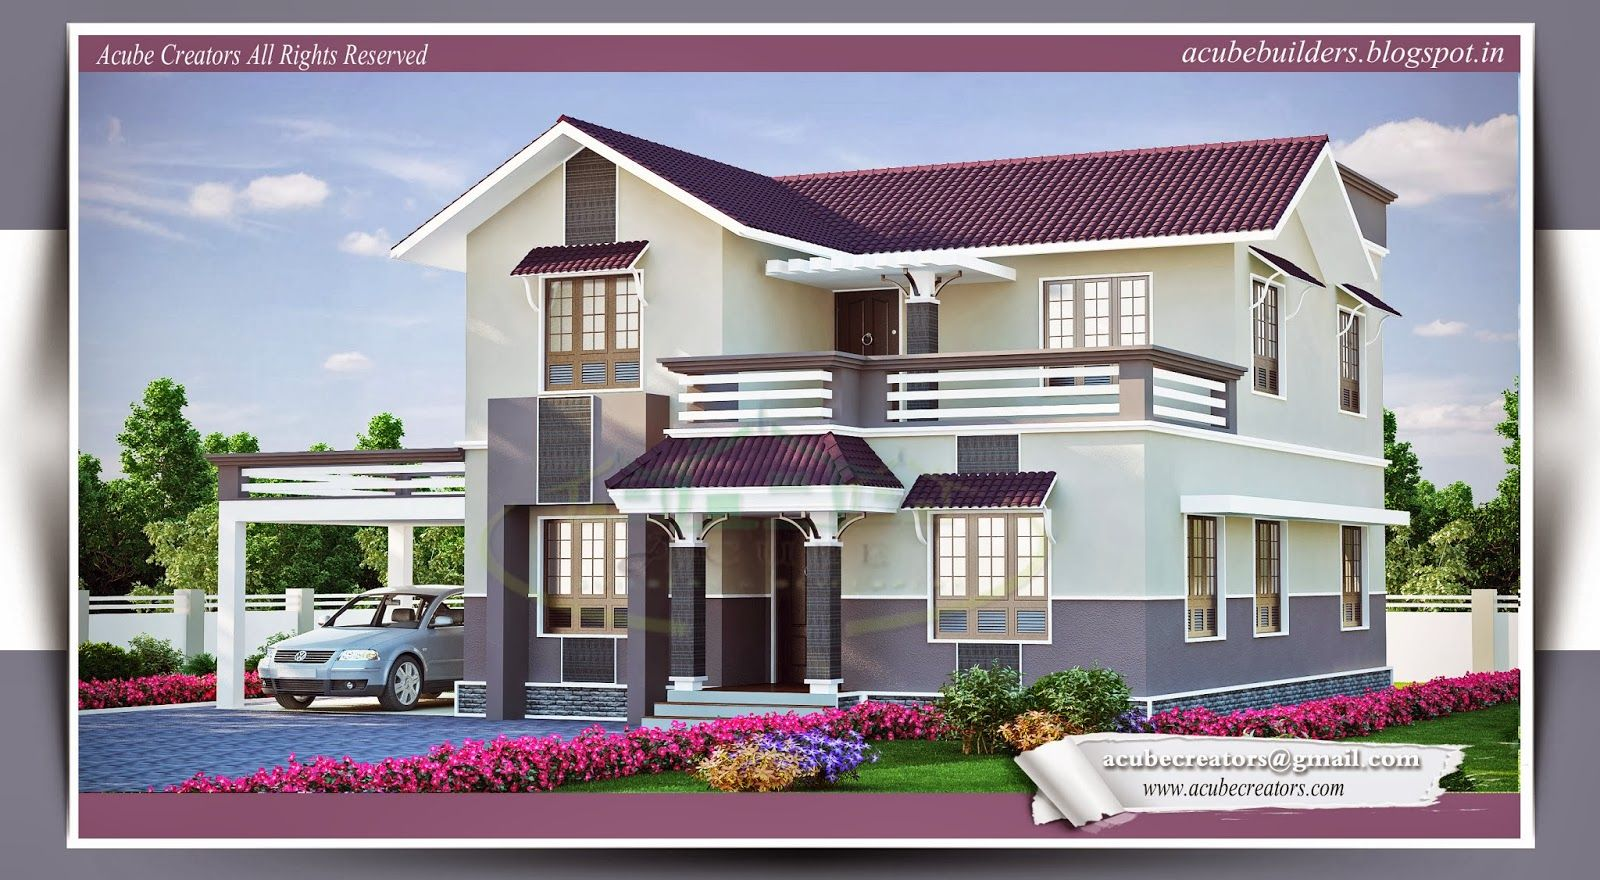 Kerala beautiful house plans photos home decoration Small home models pictures